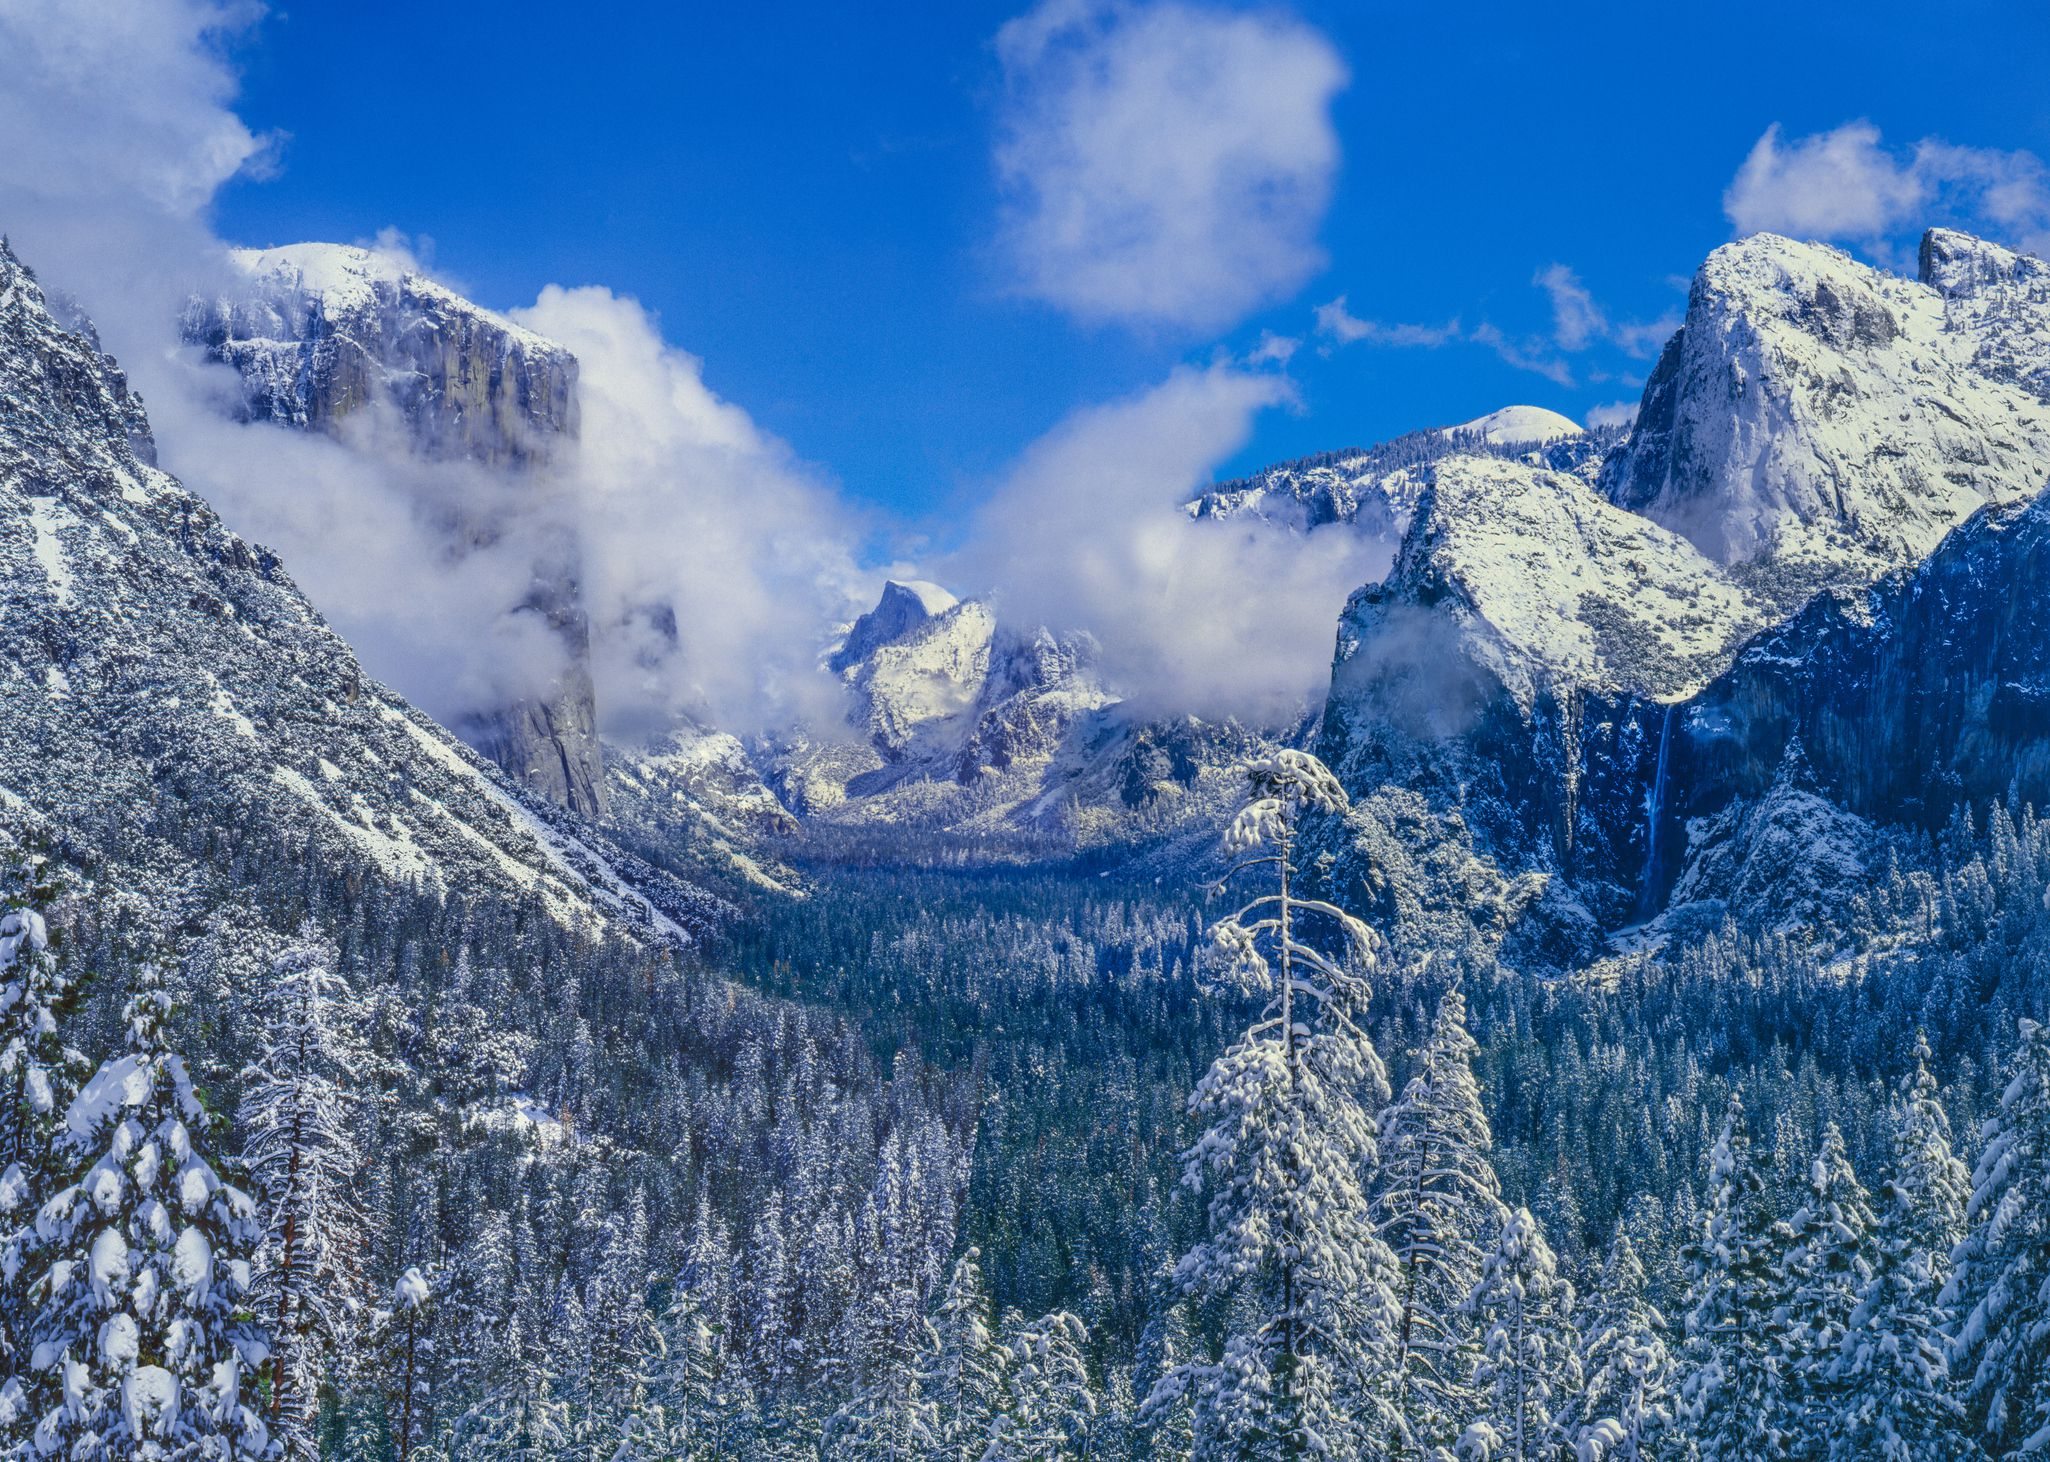 The Best National Parks to Visit in Winter